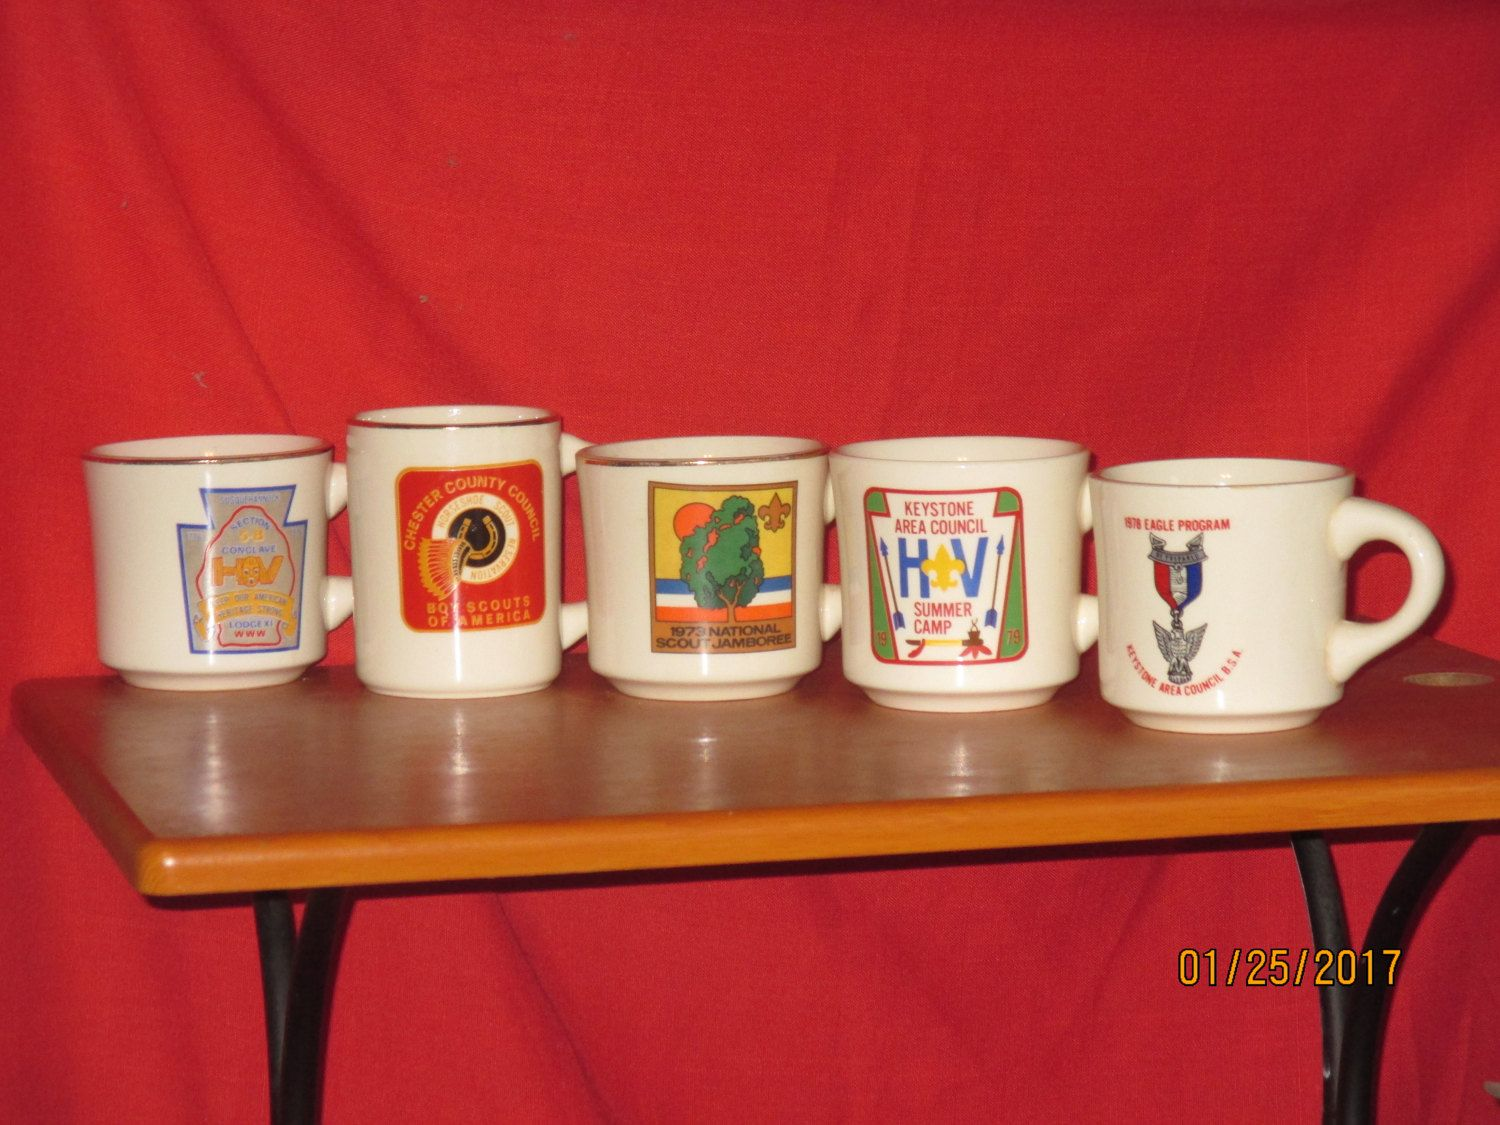 boy scout coffee mug collection (5) total, vintage by